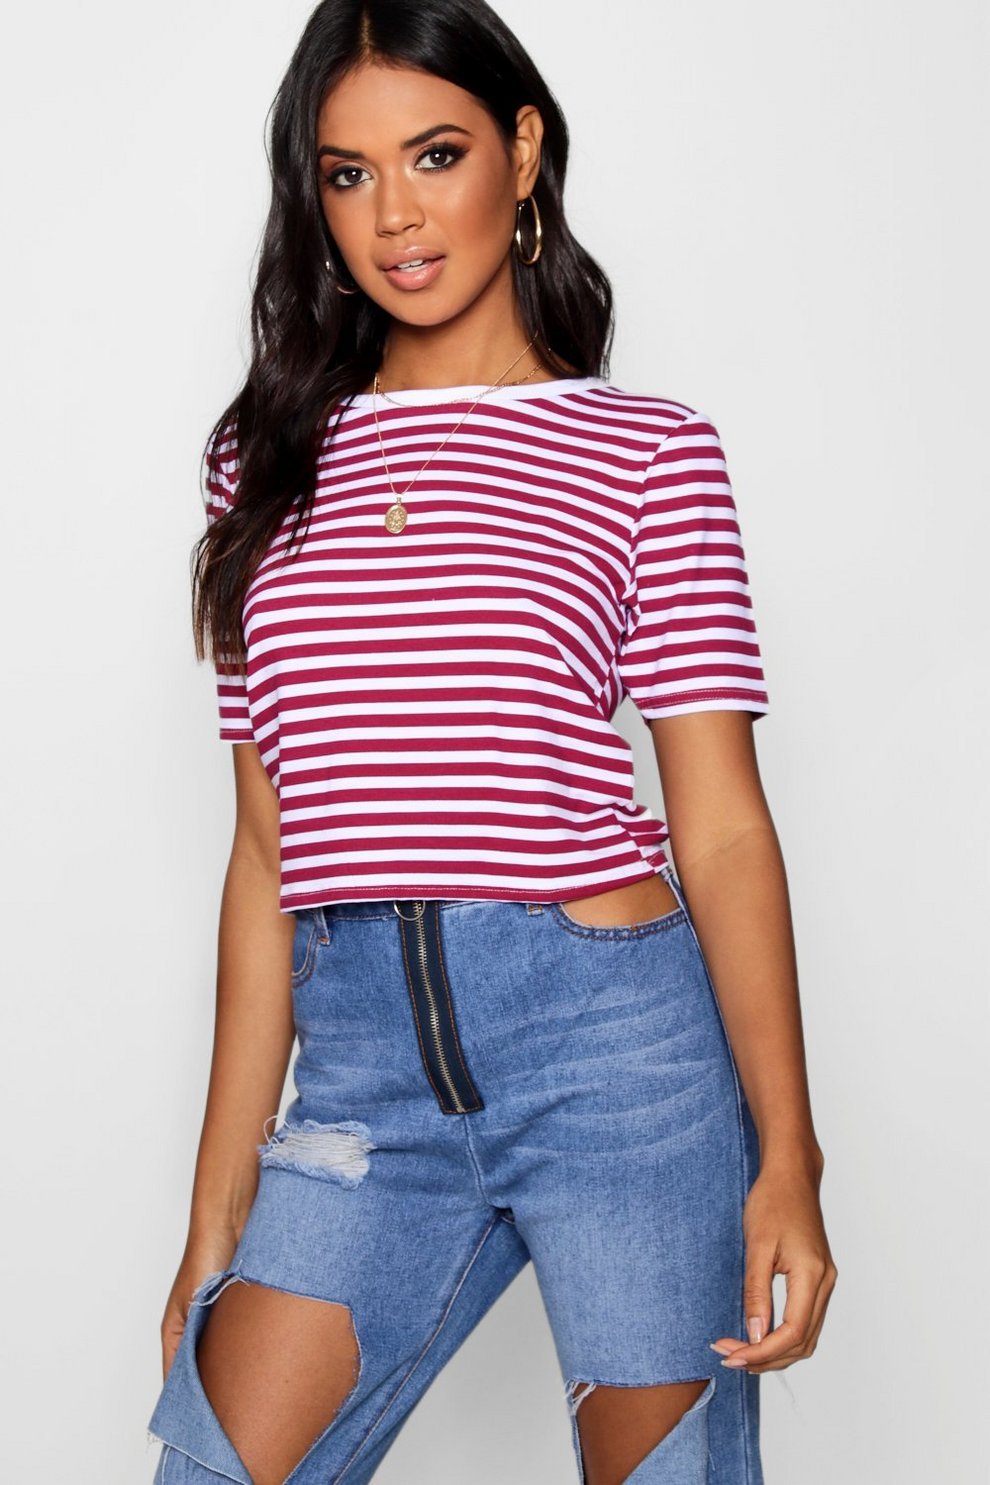 Boohoo Contrast Rib Crop T-Shirt Limited New Shopping Online Original Clearance Footlocker Free Shipping s3Abj